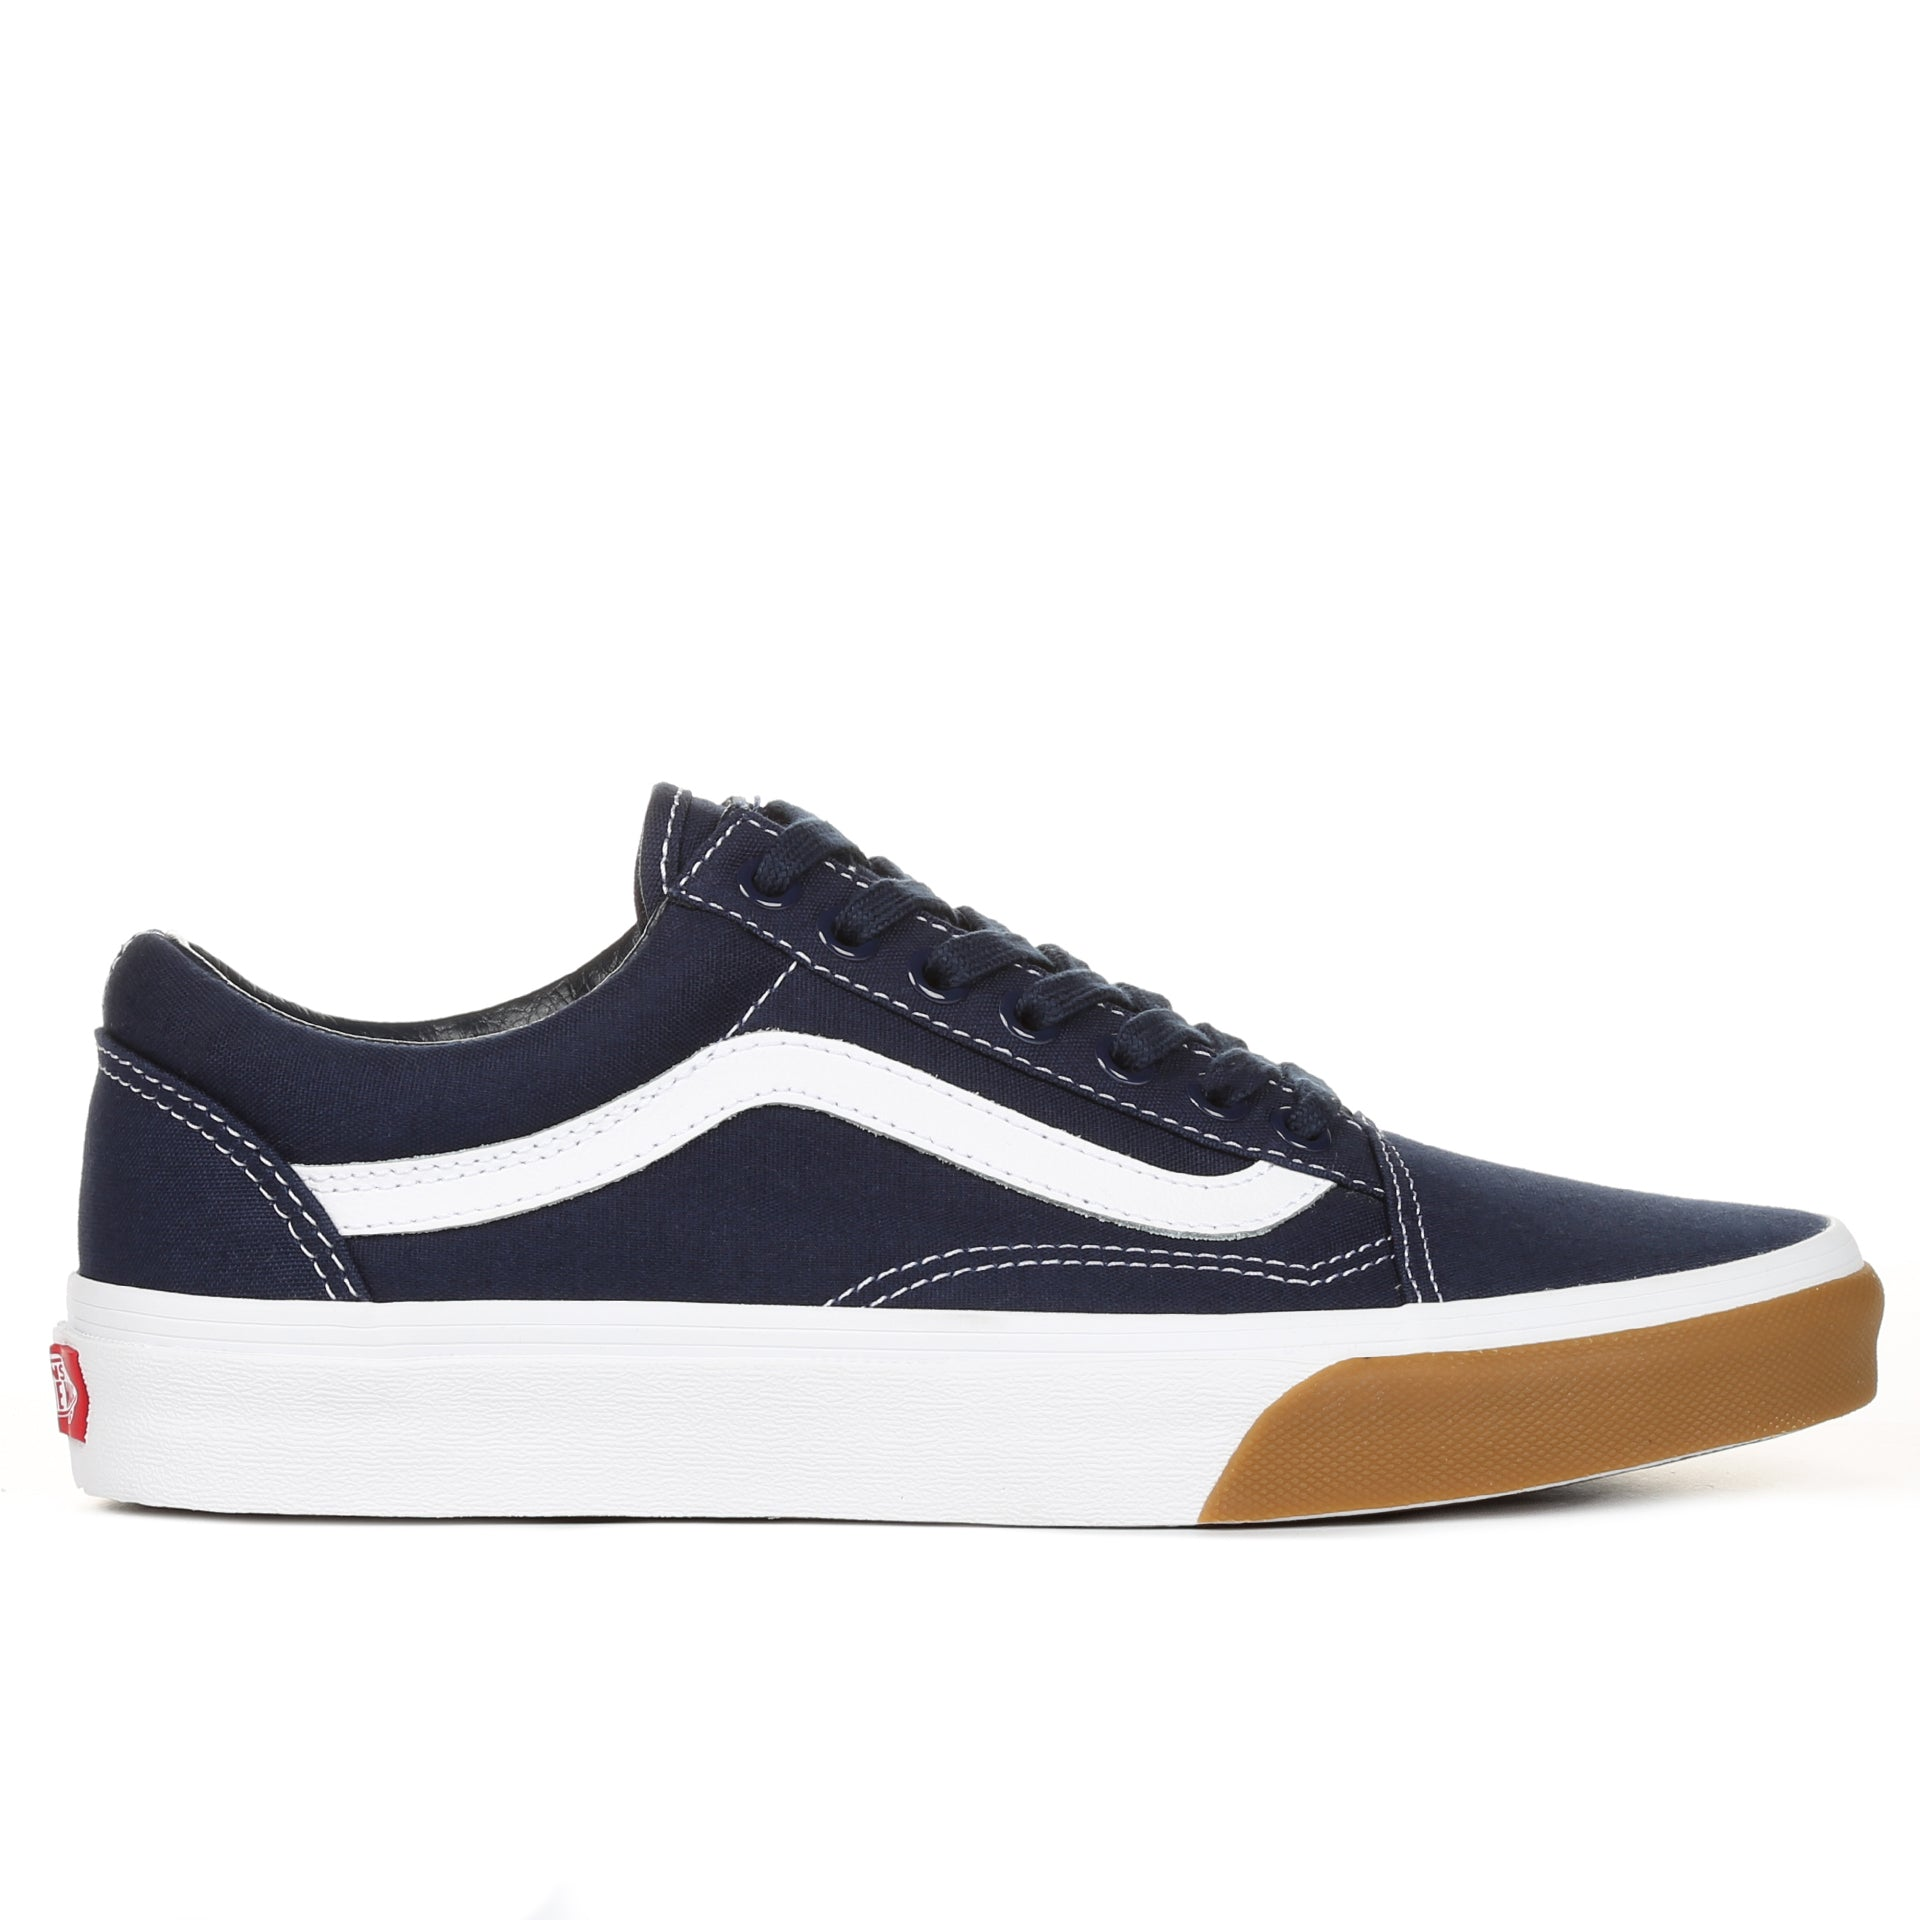 23e9274dd3 Vans Old Skool Gum Bumper - Dress Blues - New Star